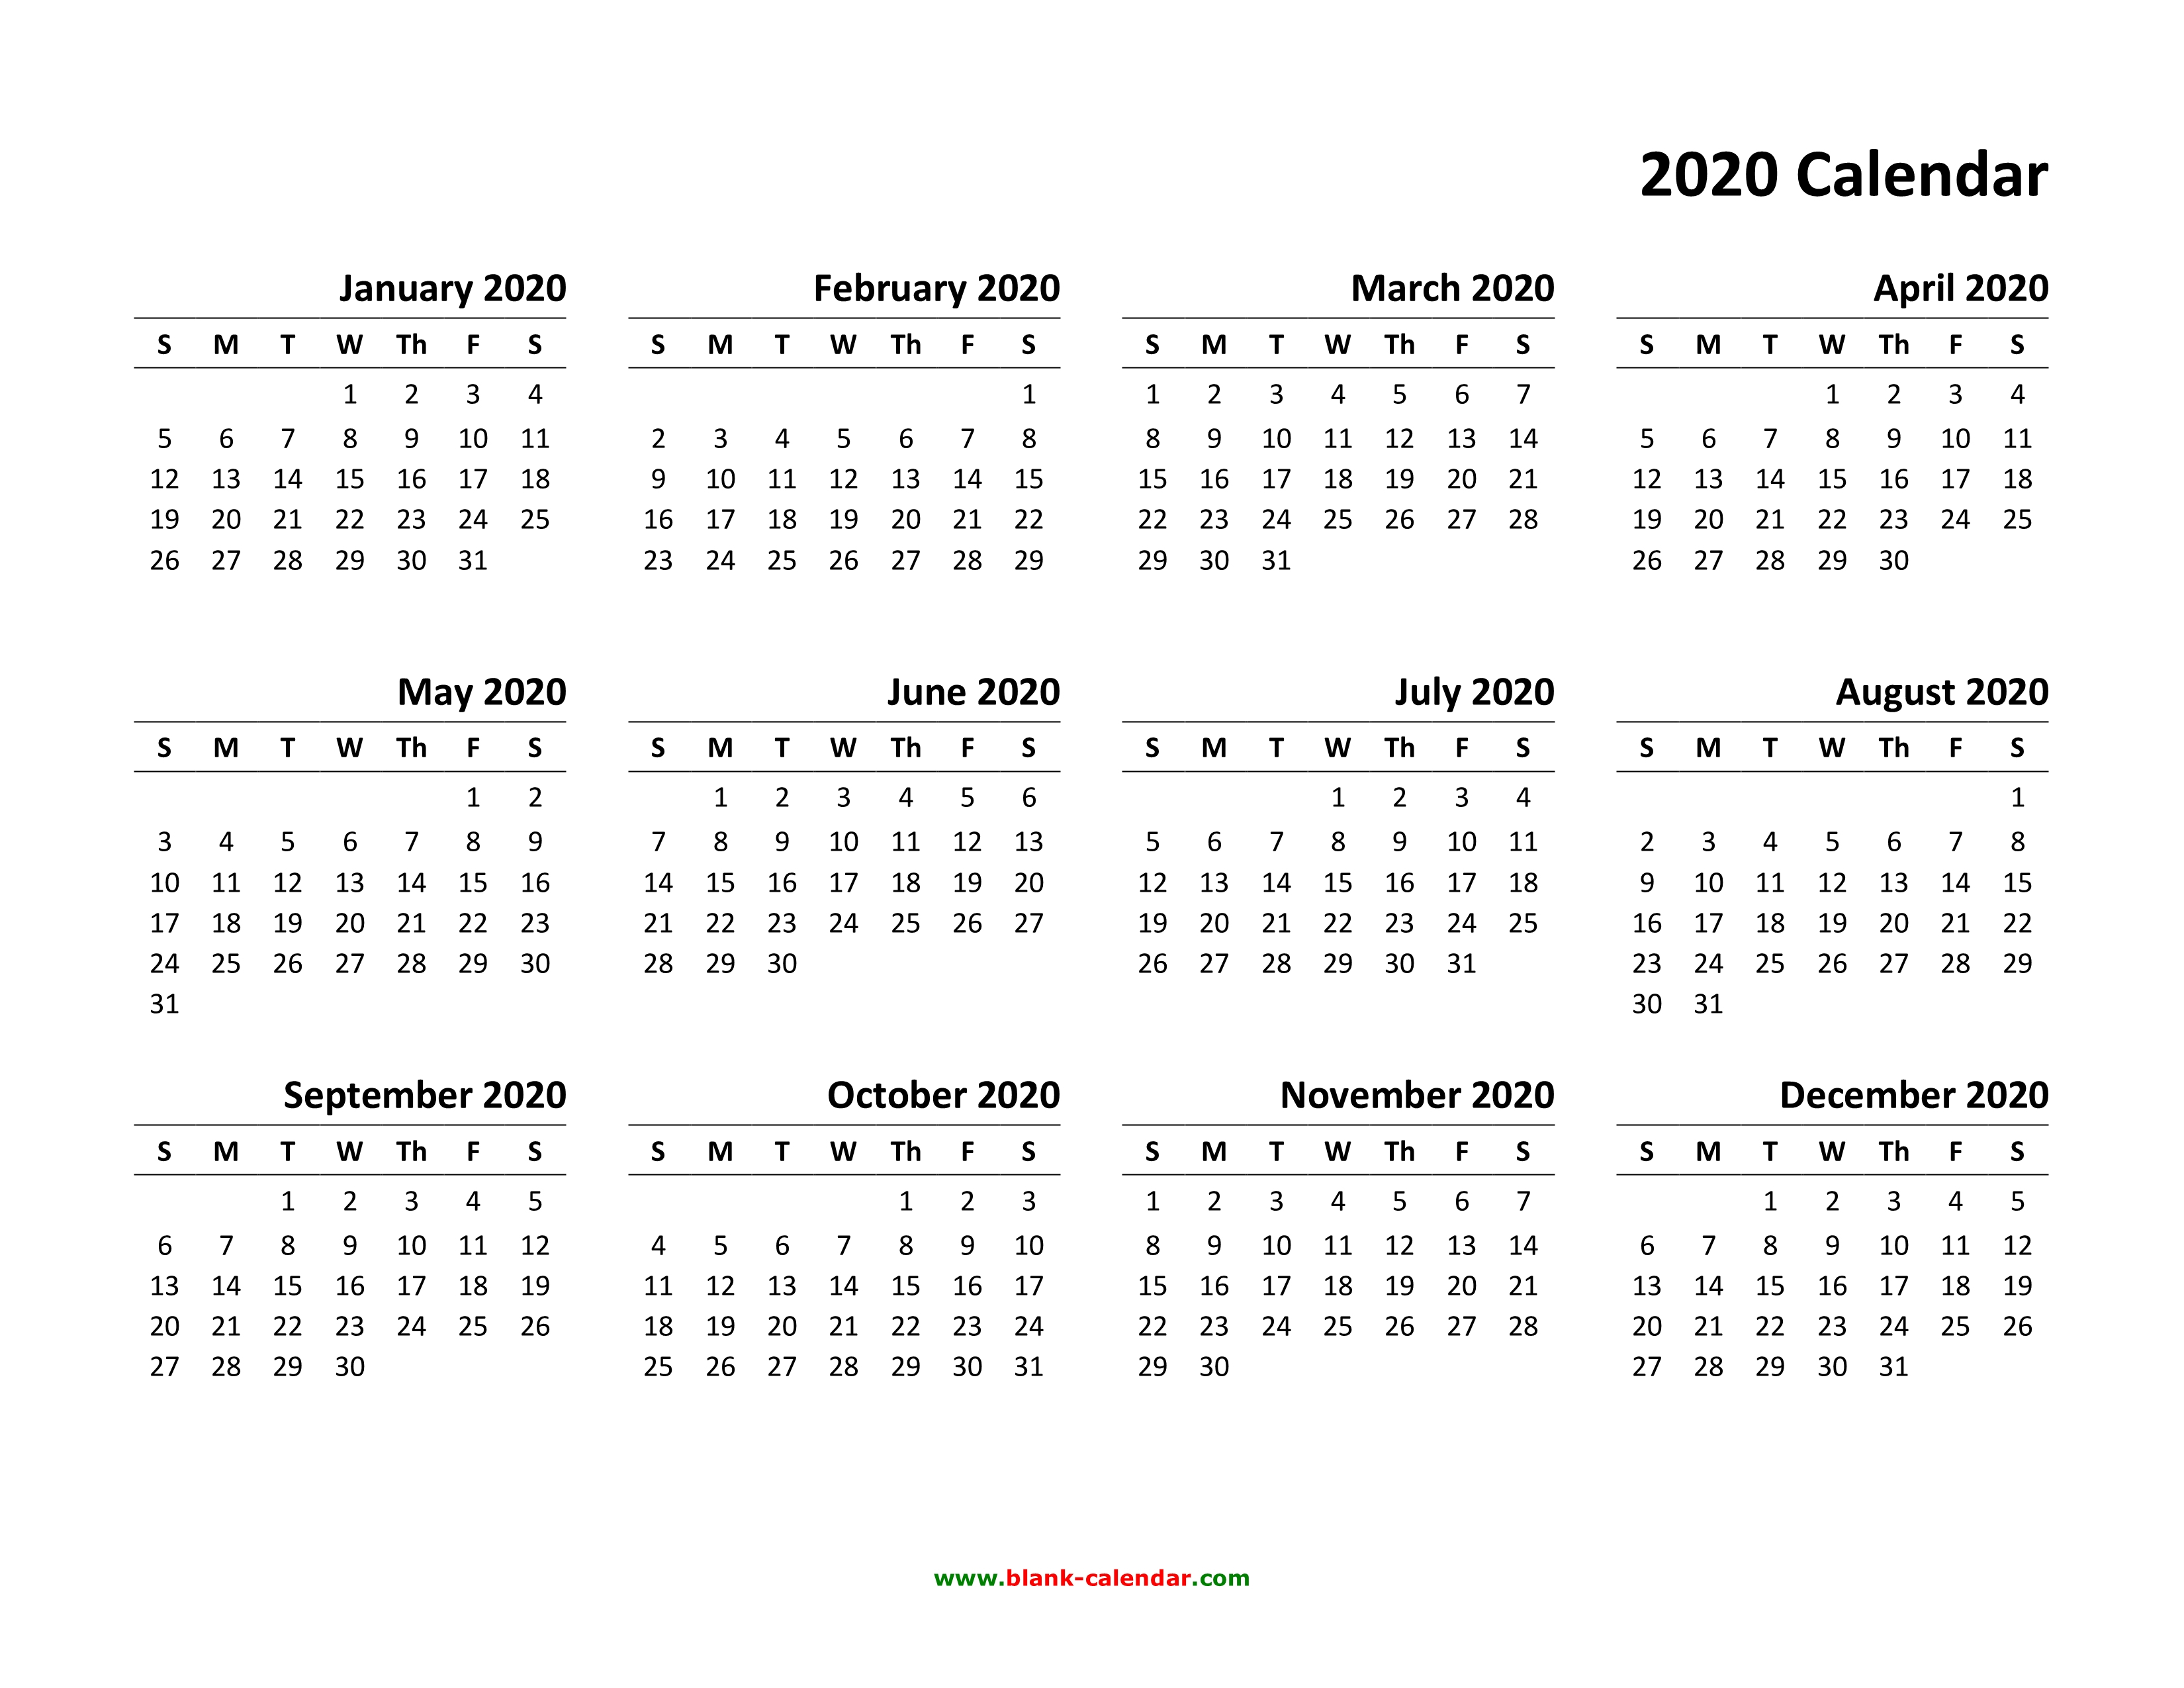 Yearly Calendar 2020 | Free Download And Print with regard to Printable 2020 Calendars No Download